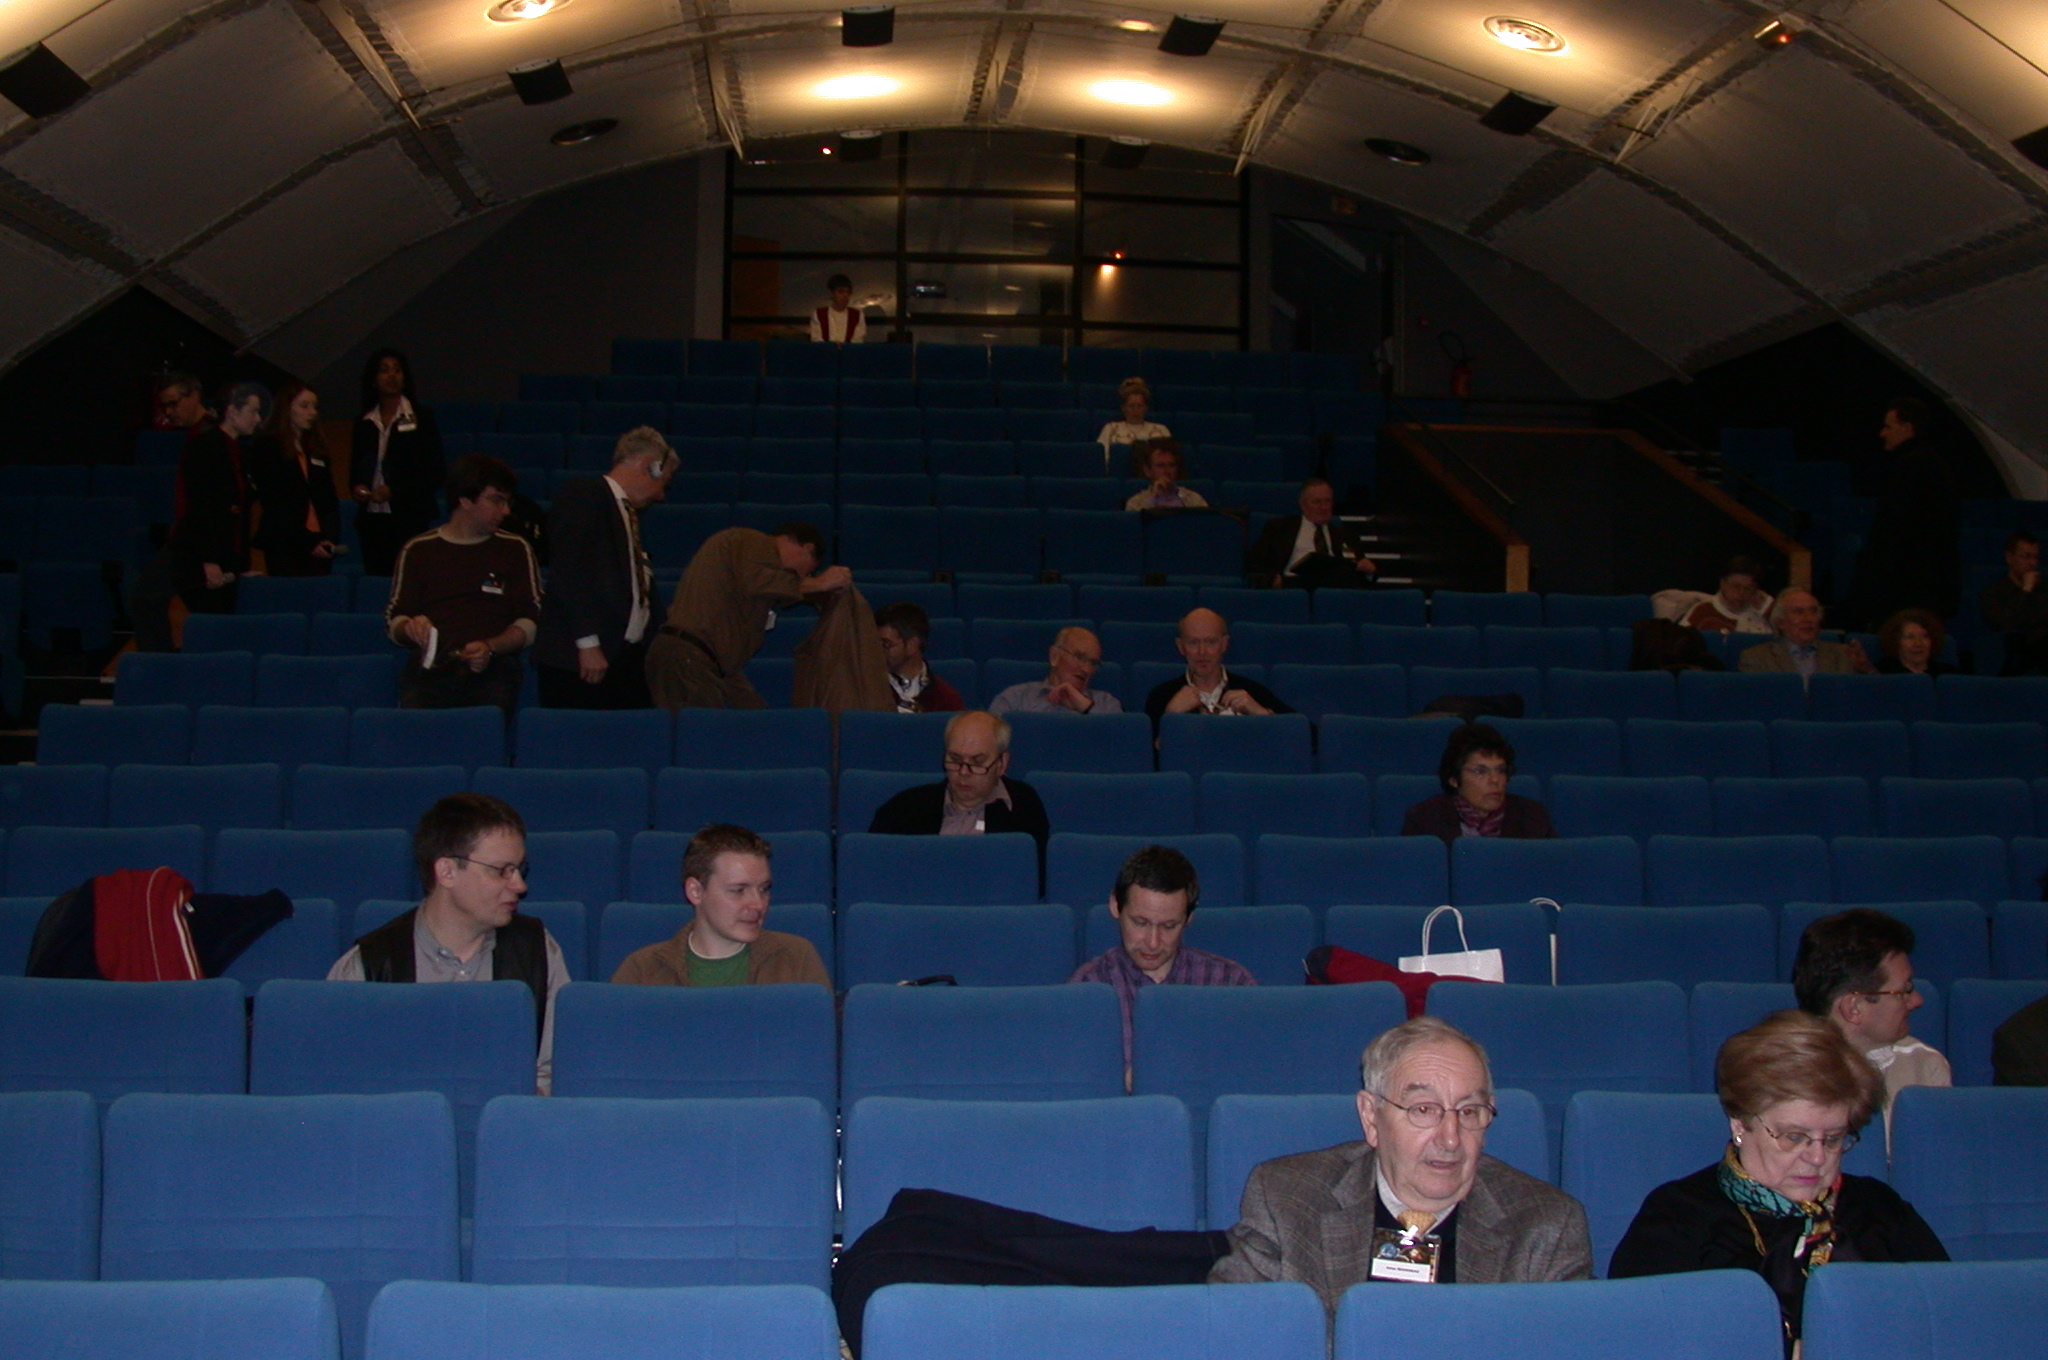 DSCN0013.jpg - The attendees fill...